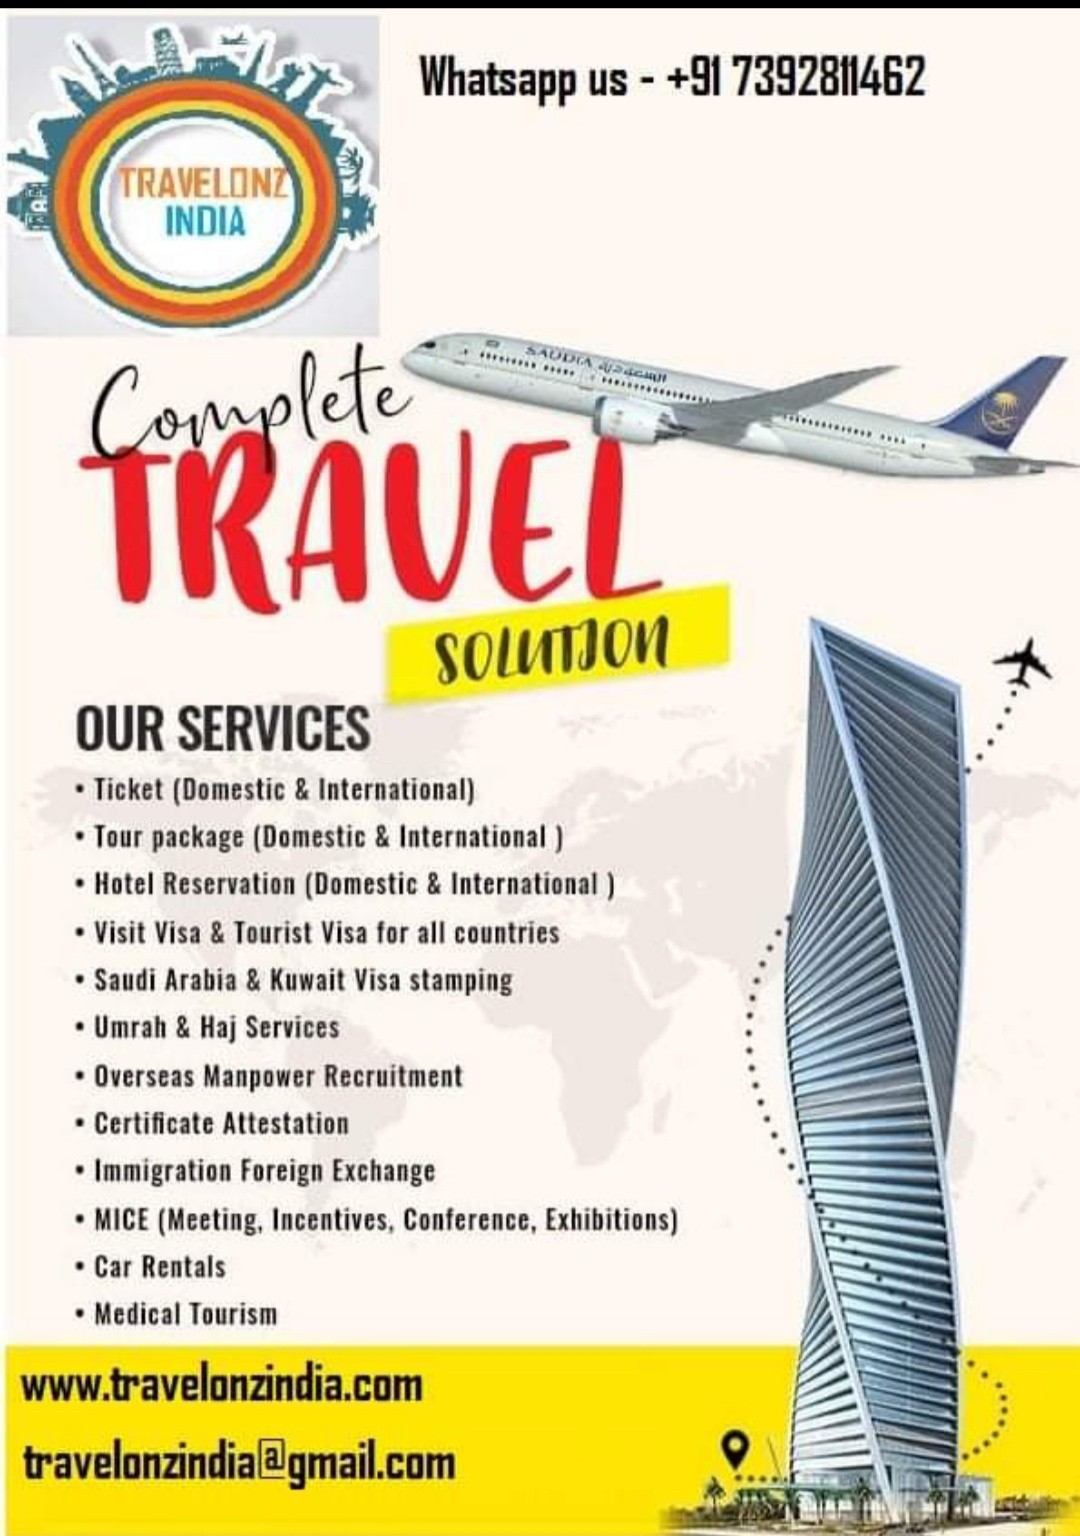 TRAVELONZ INDIA in Lucknow